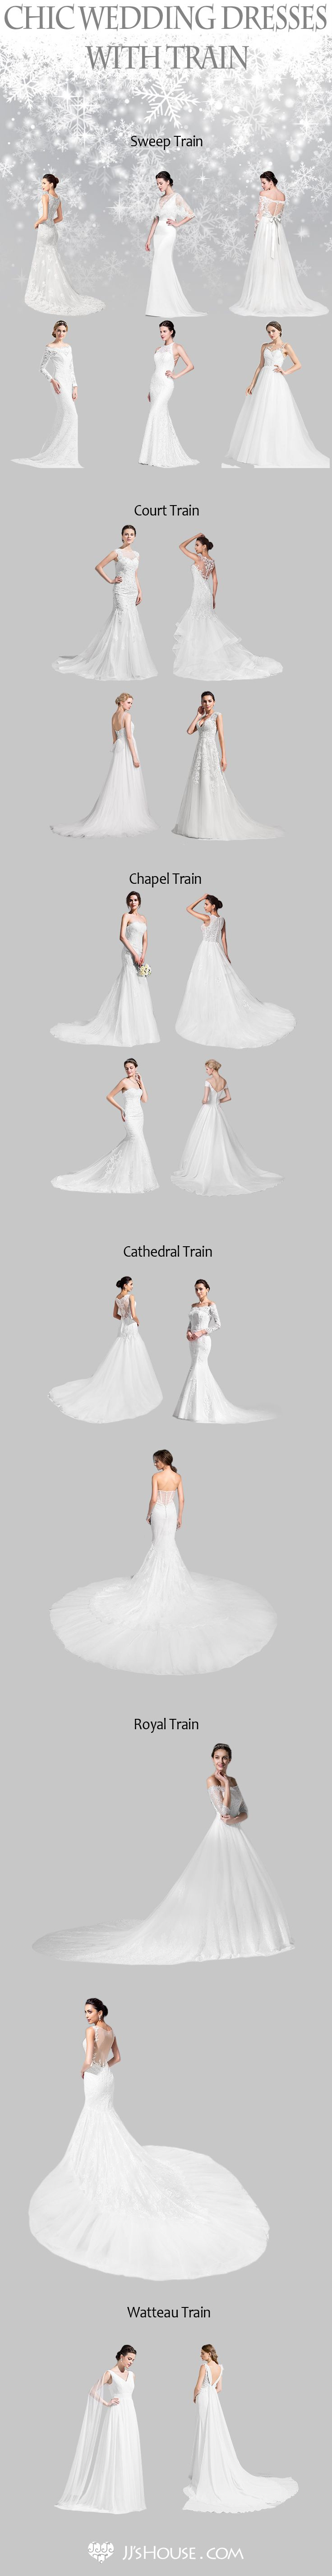 CHIC Wedding Dresses With TRAIN! CHOOSE ONE NOW! #weddingdress